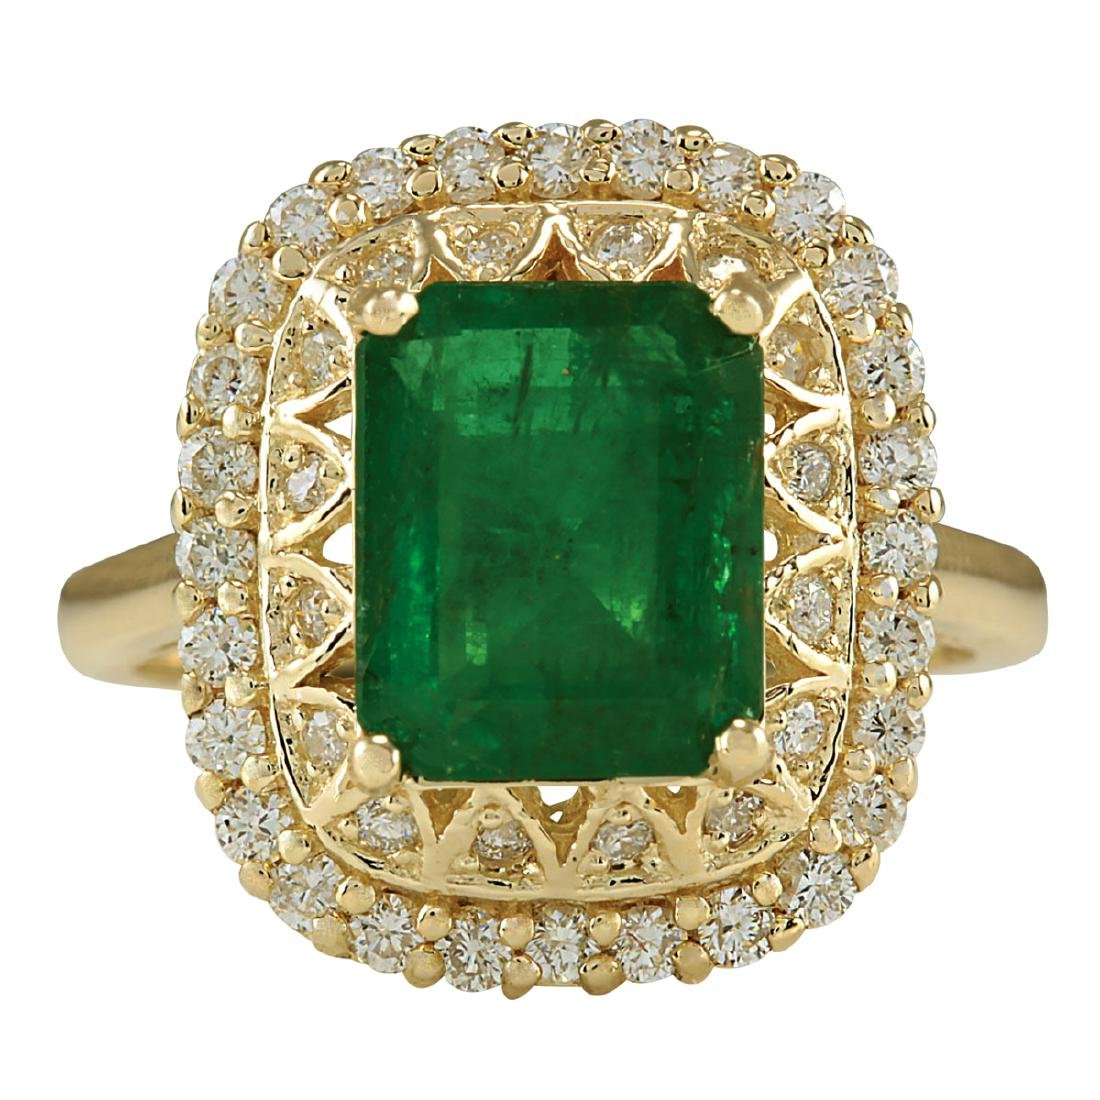 3.11Ct Natural Emerald And Diamond Ring In18K Solid